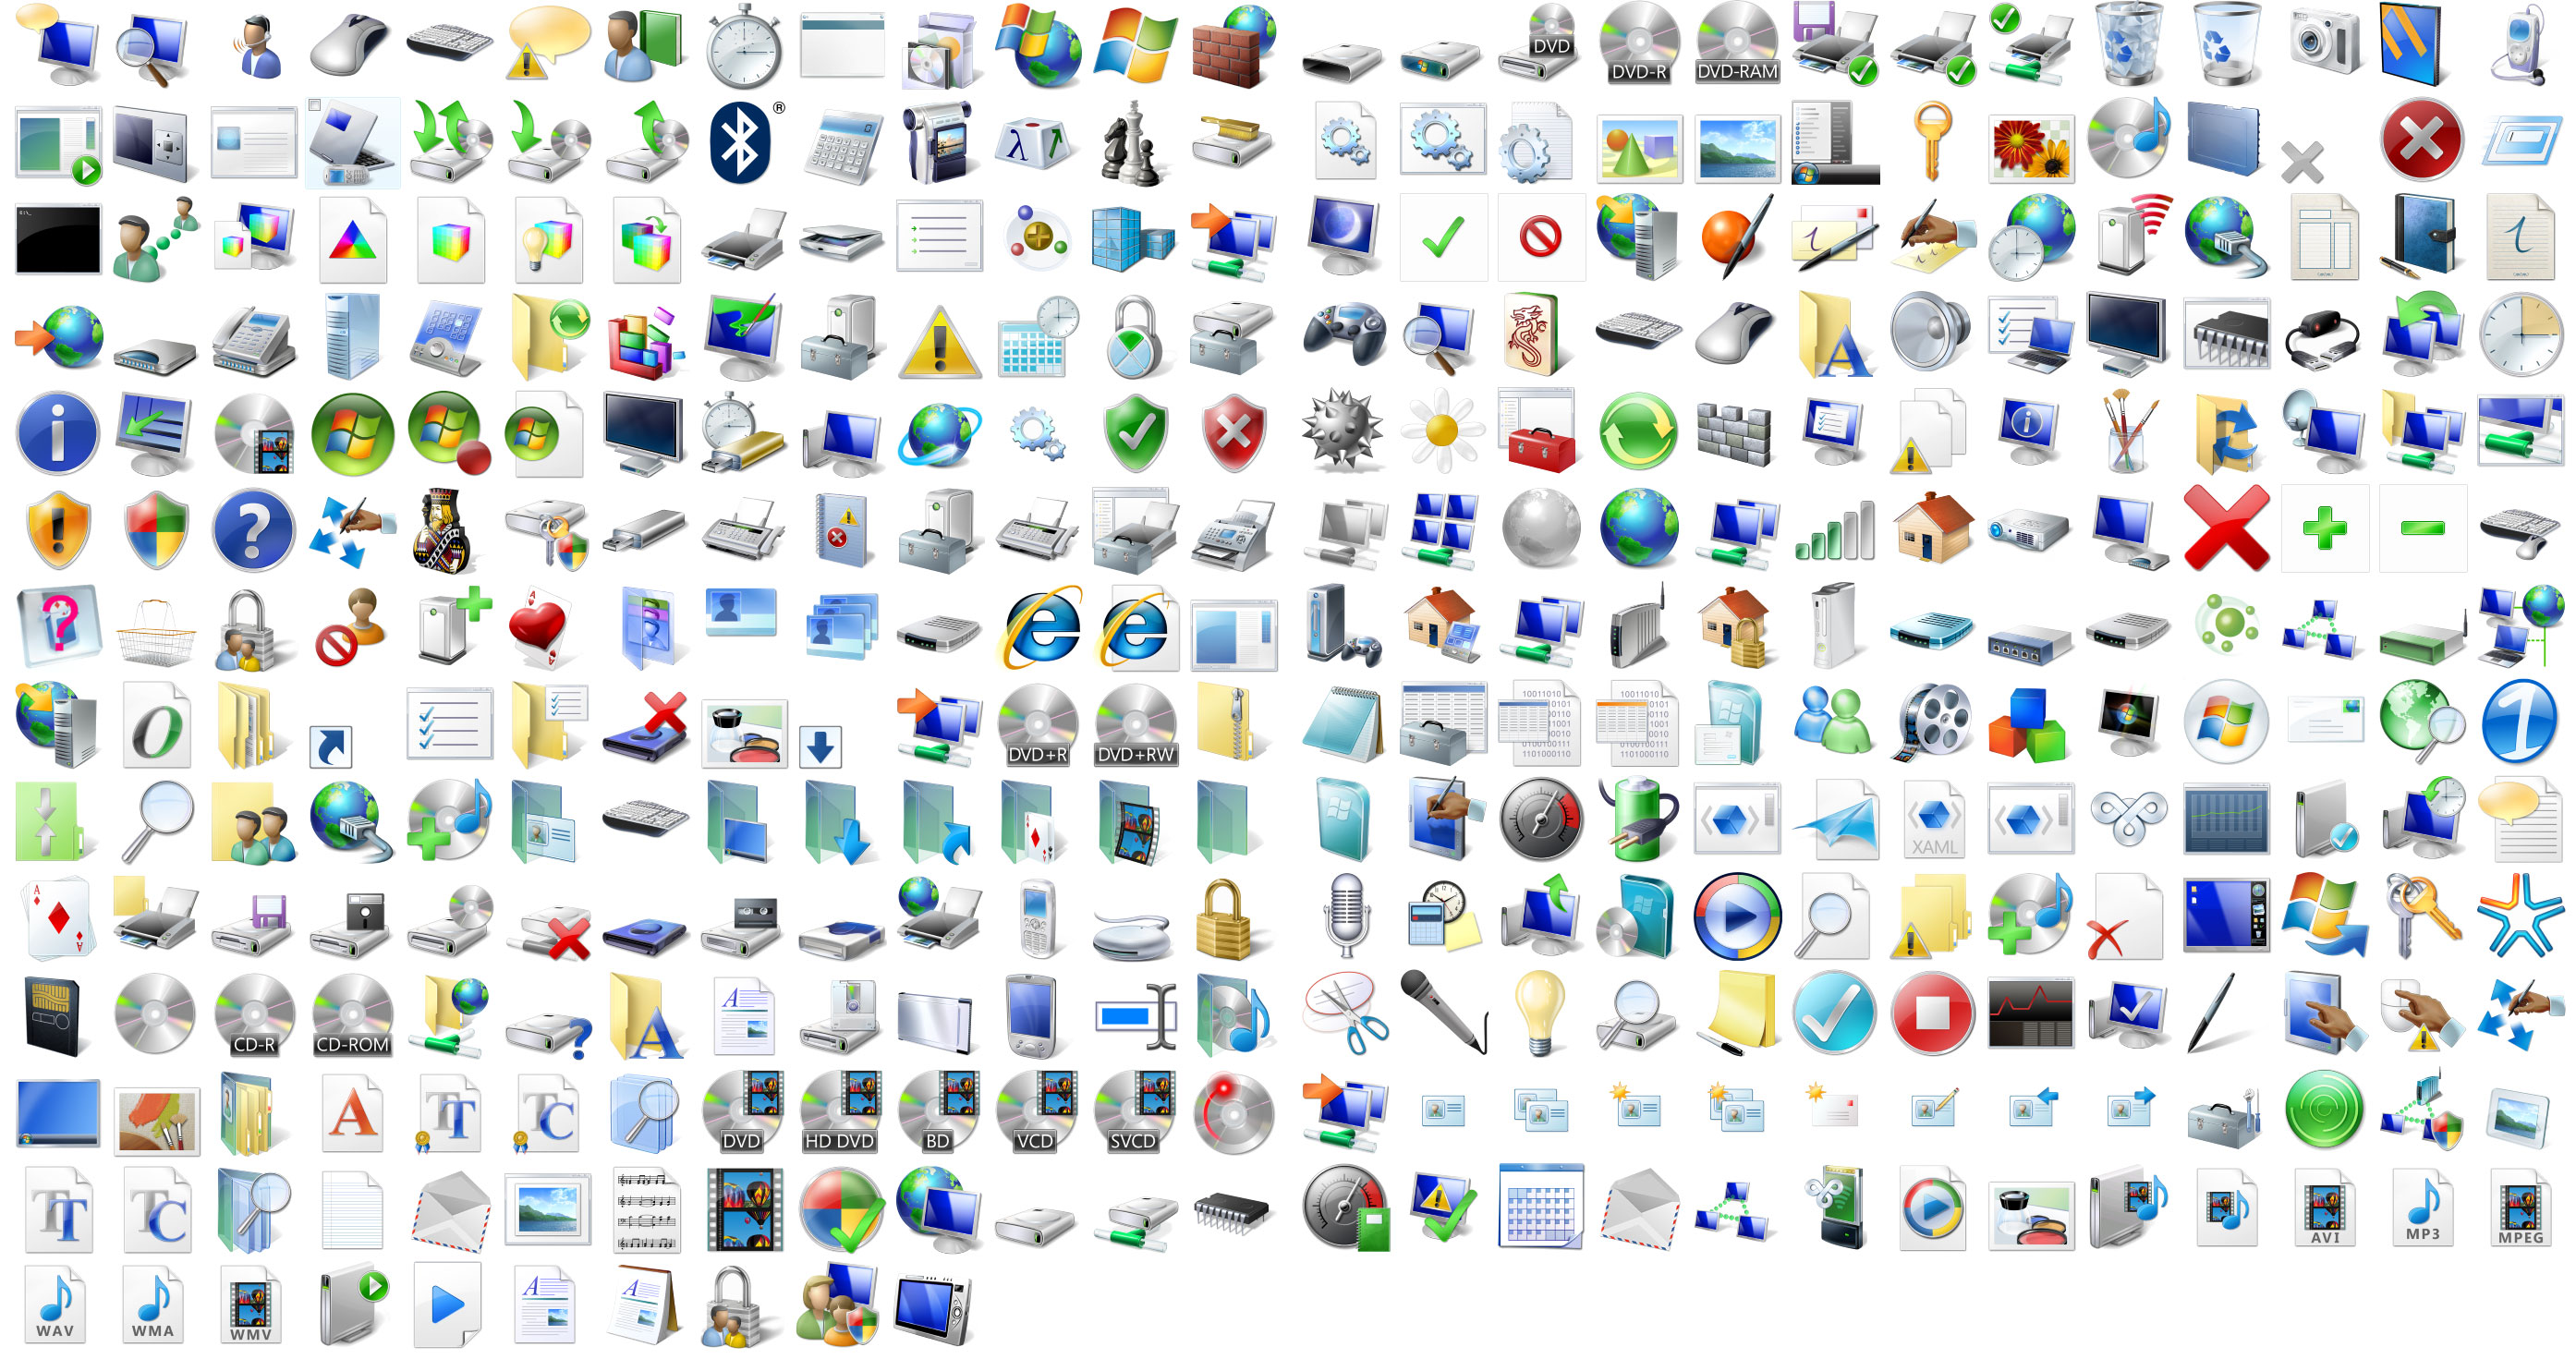 18 Free Computer Icons For Vista Images